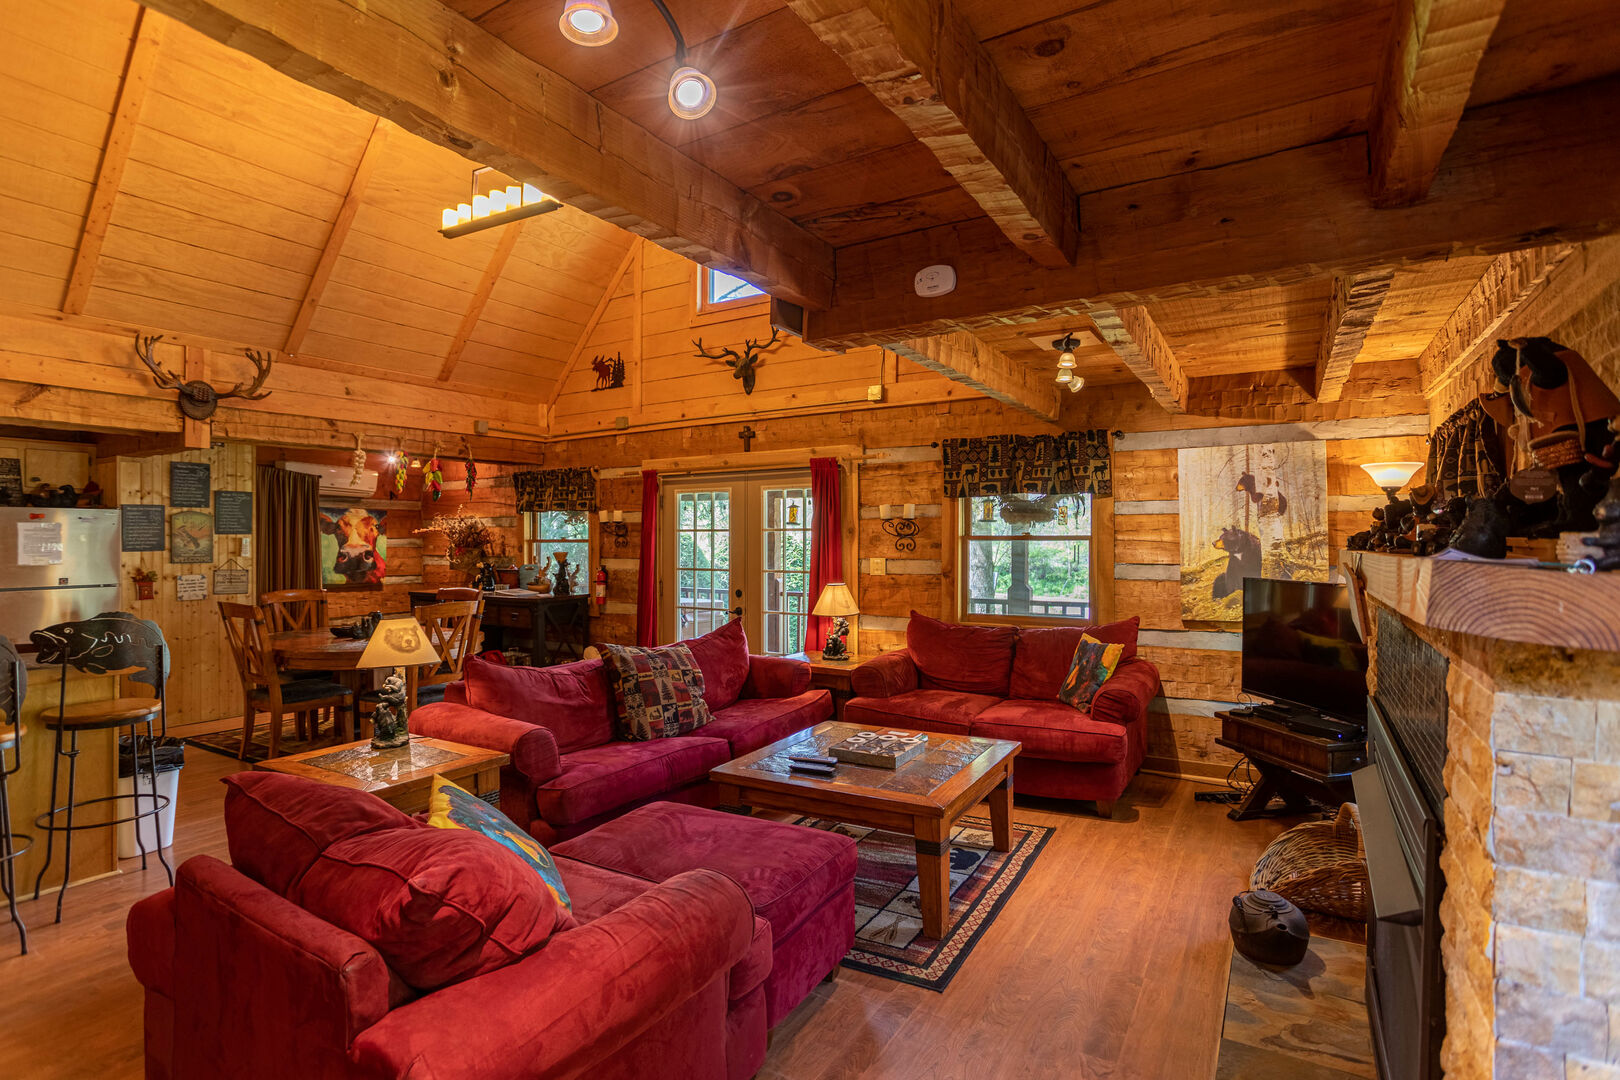 Property Info The Best Boone Nc Cabin Rentals And Blowing Rock Nc Cabin Rentals